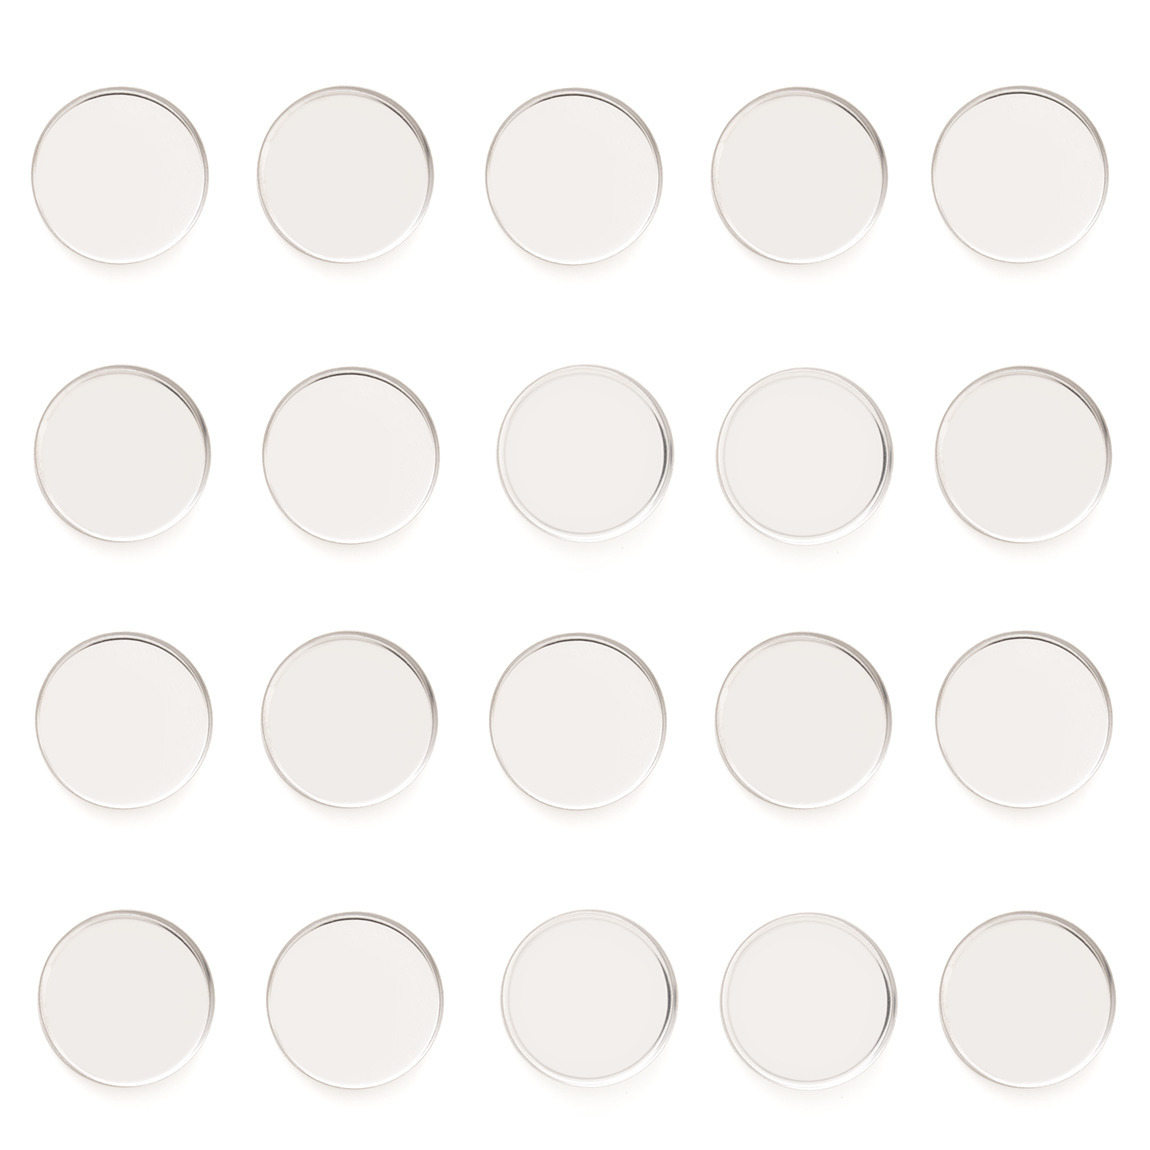 Z•Palette Empty Metal Pans 20 Pack - Round product swatch.